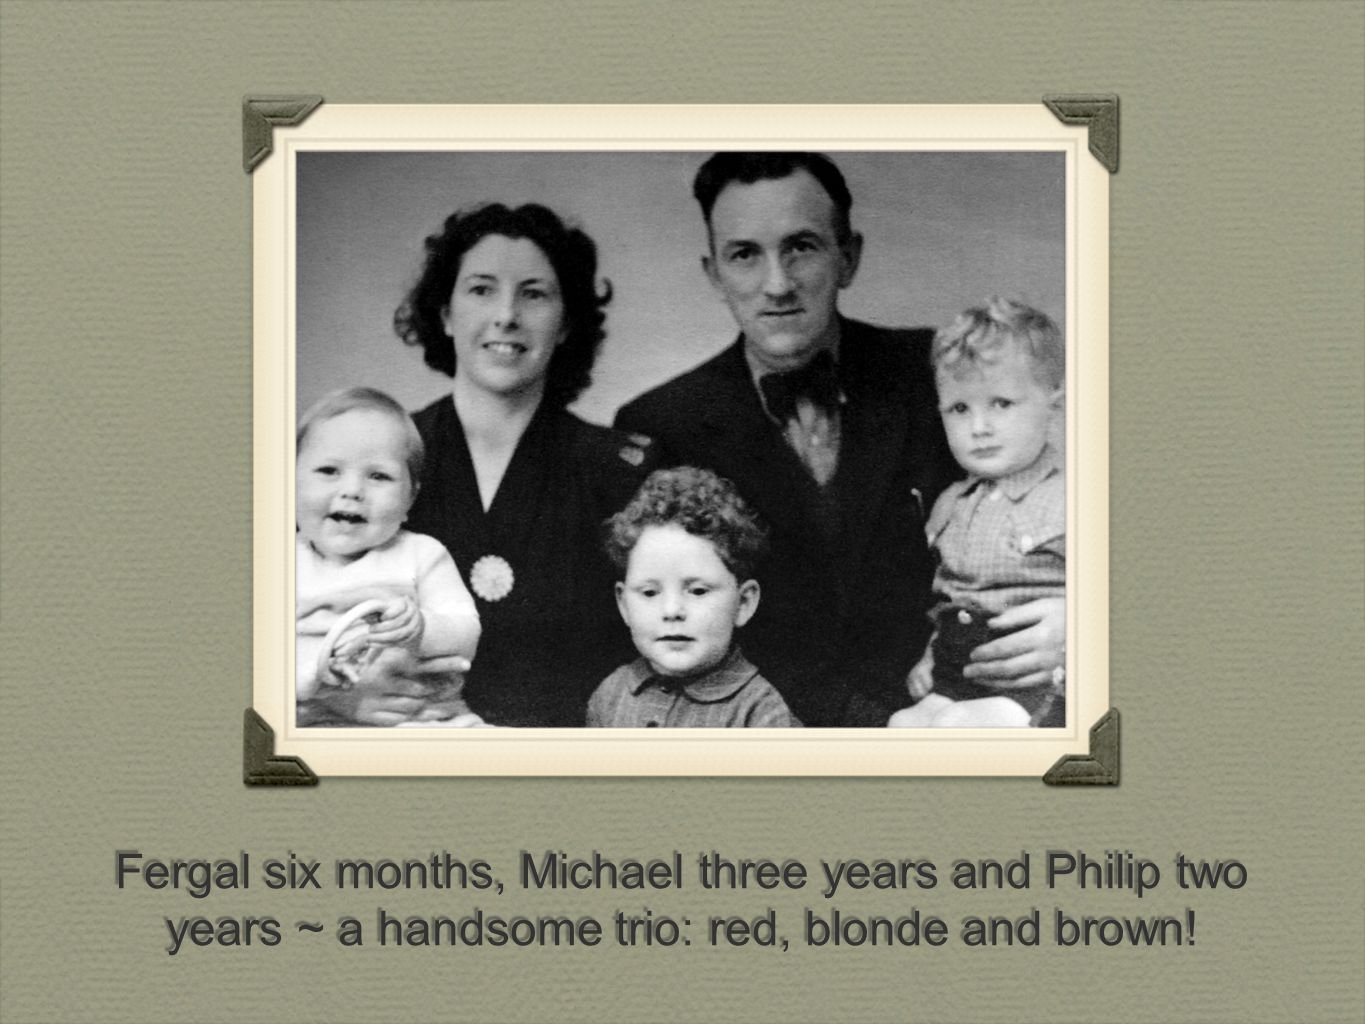 Fergal six months, Michael three years and Philip two years ~ a handsome trio: red, blonde and brown!